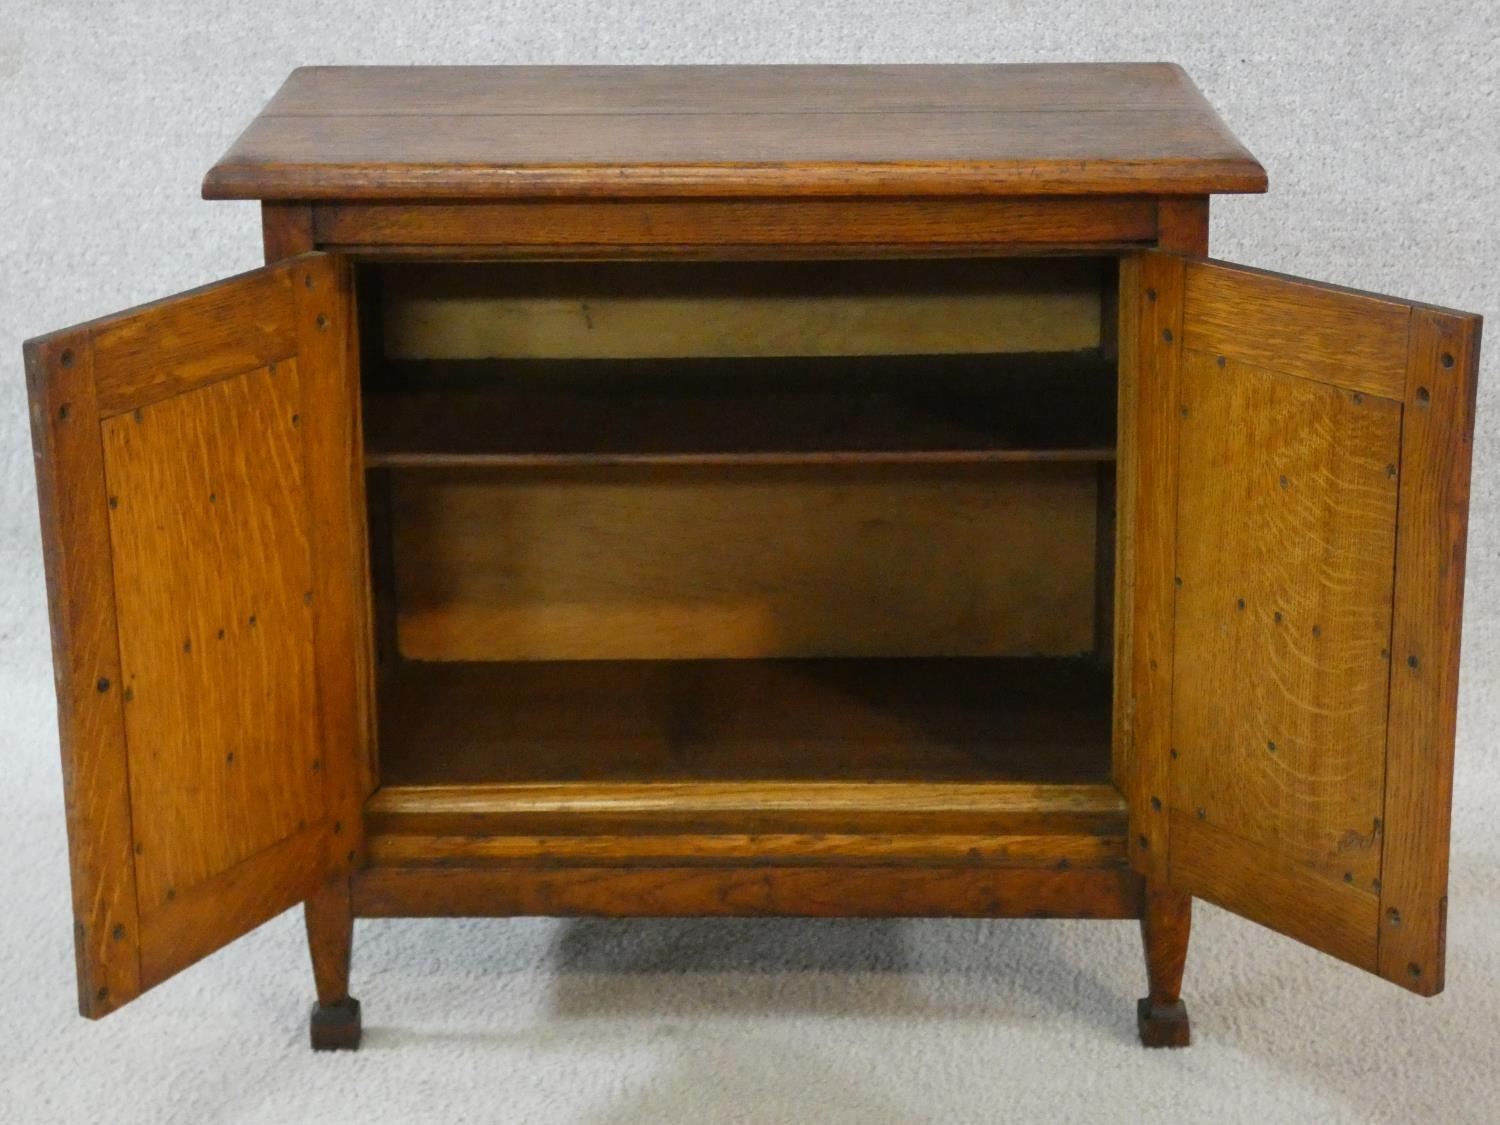 An early 20th century country oak style side cabinet with carved panel doors on squat square - Image 14 of 14